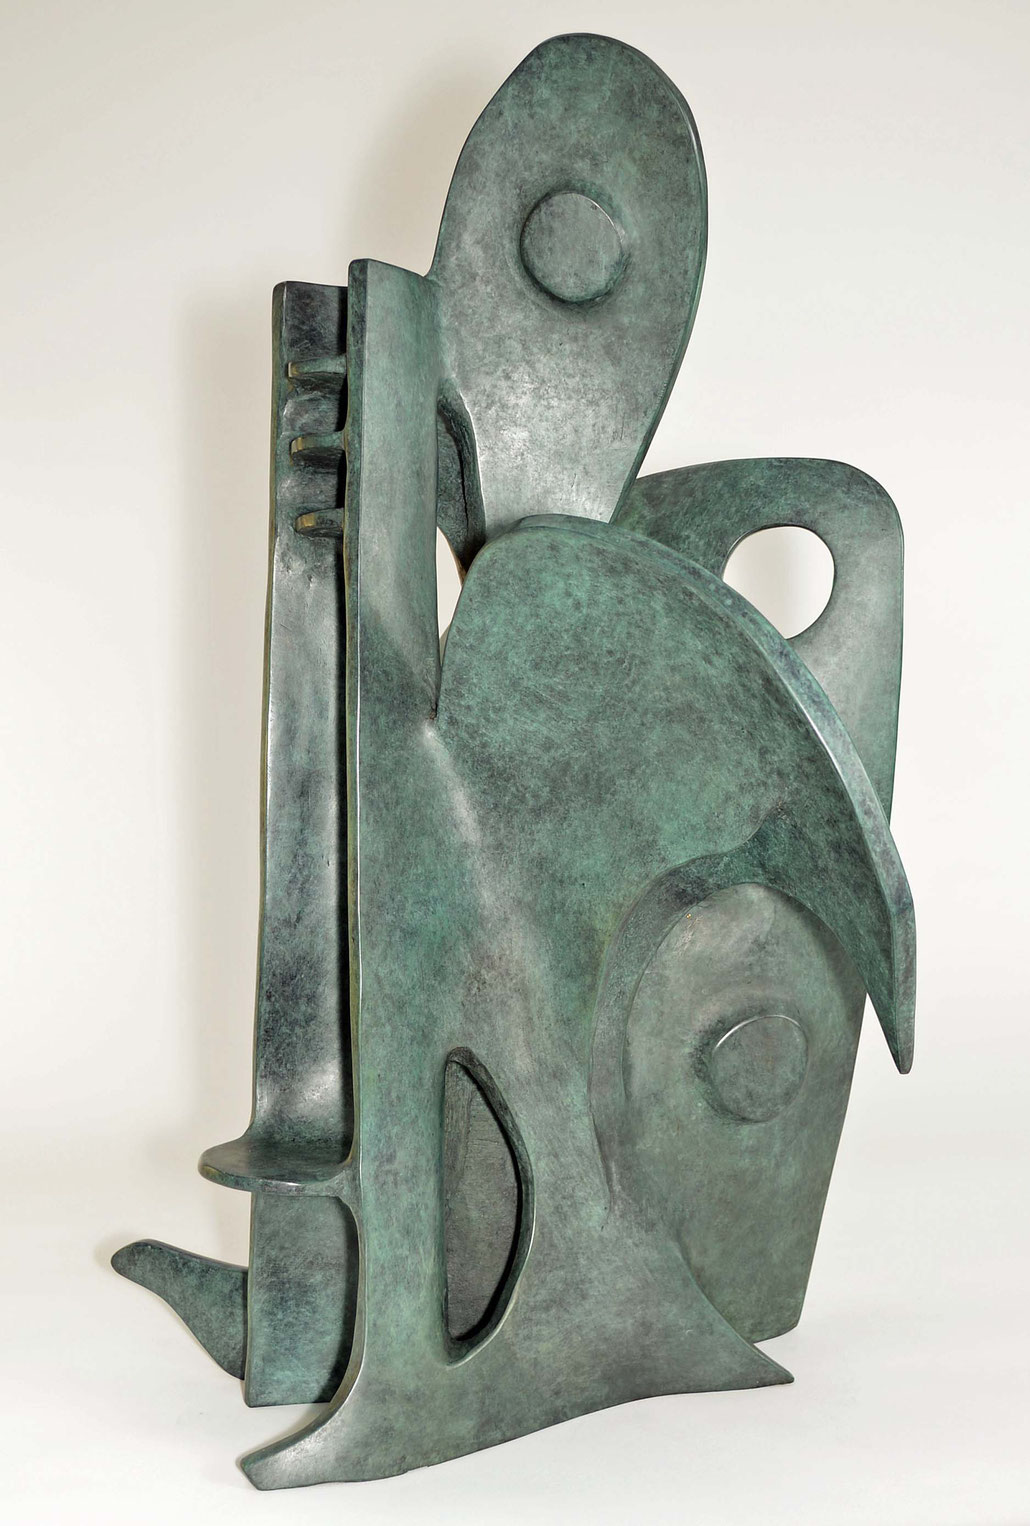 Robert Bowman Gallery as well as Abby Hignell showed bronzes made by Nicole Farhi in London.